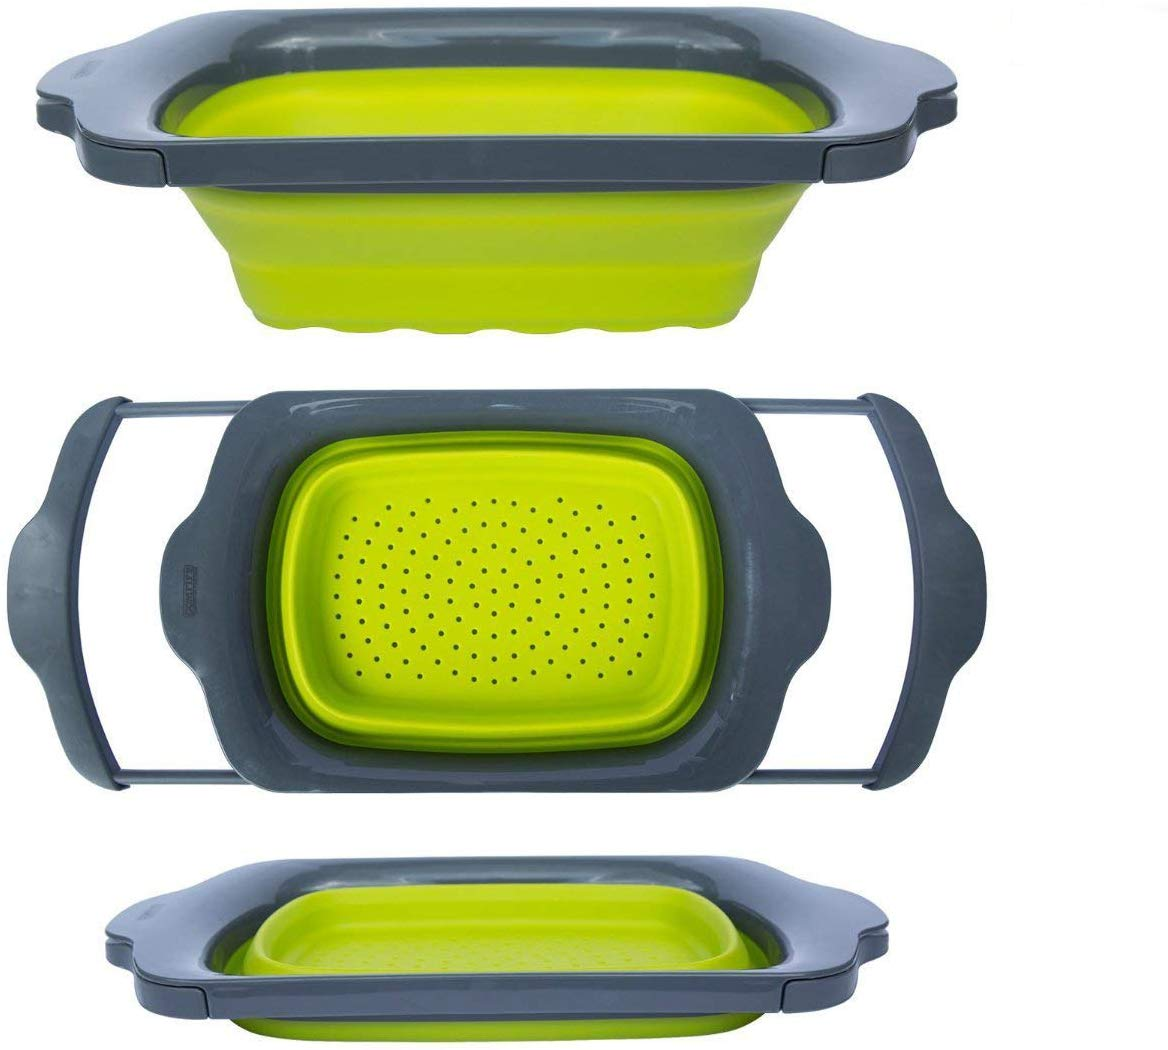 Colander collapsible over the sink colander with handles